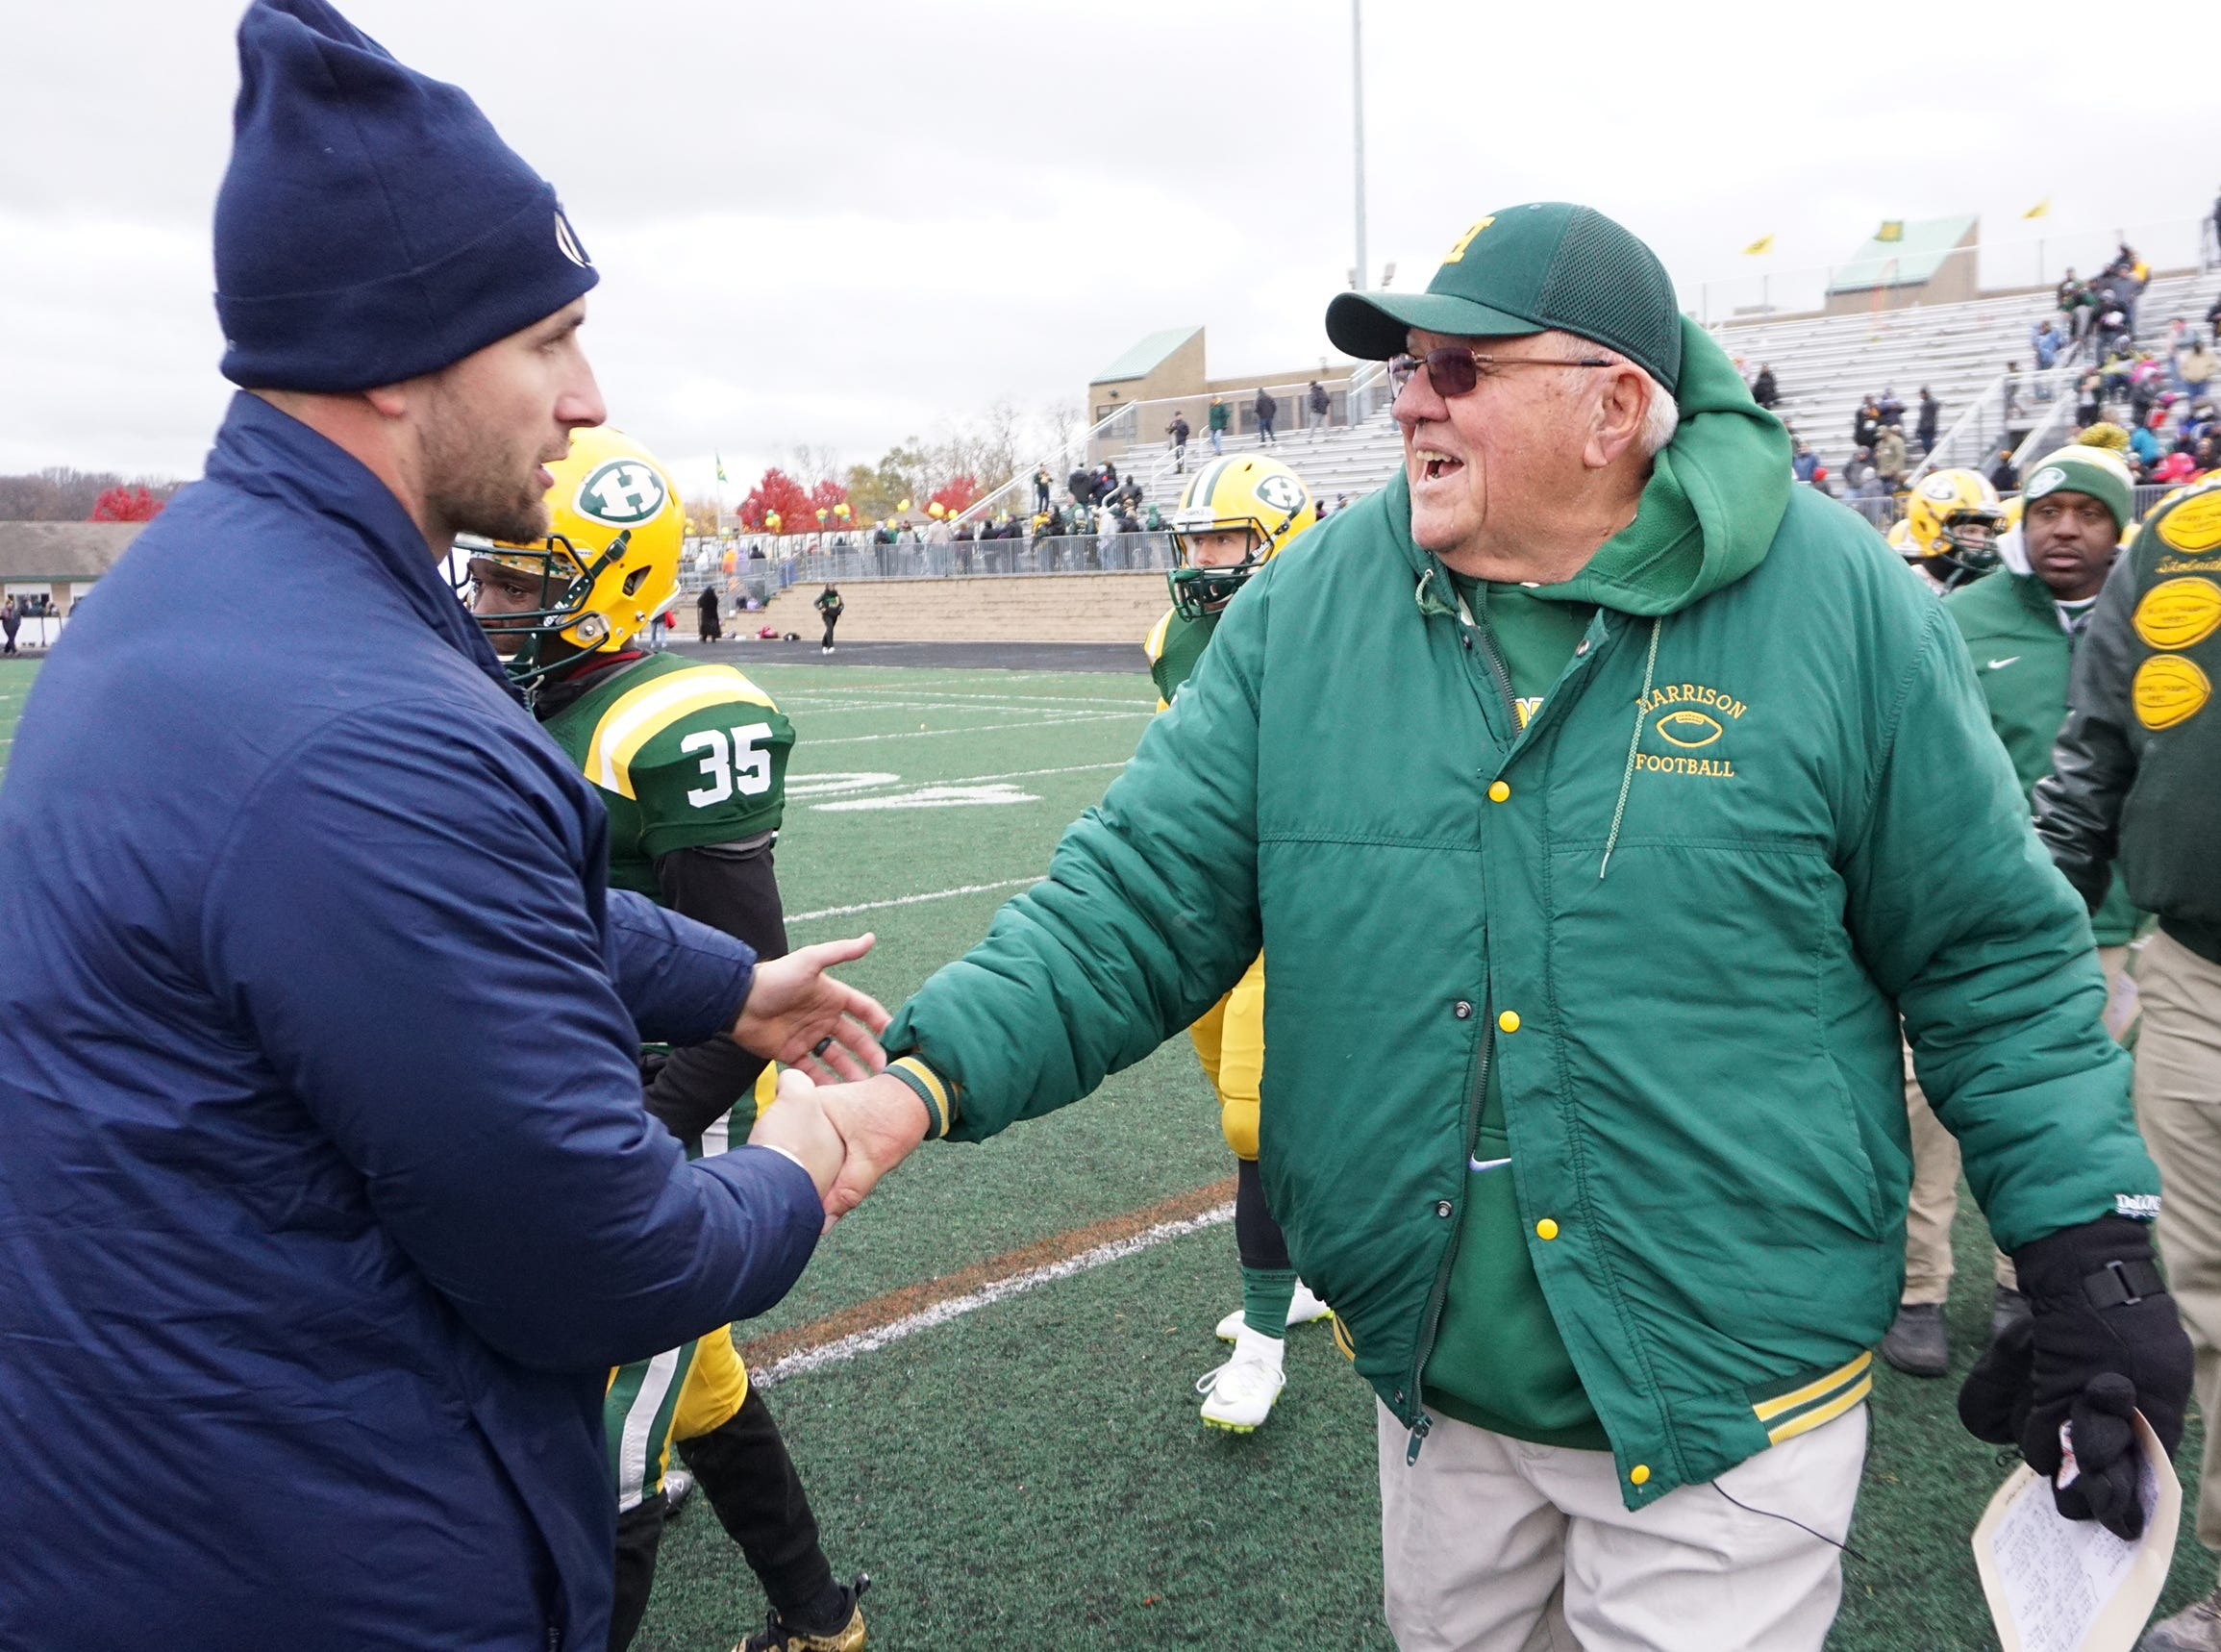 Farmington Harrison Head Coach John Herrington shakes hands with Chelsea Head Coach Josh Lucas after the Hawks lost 21-14 to Chelsea ending the season and the storied football program at Harrison.